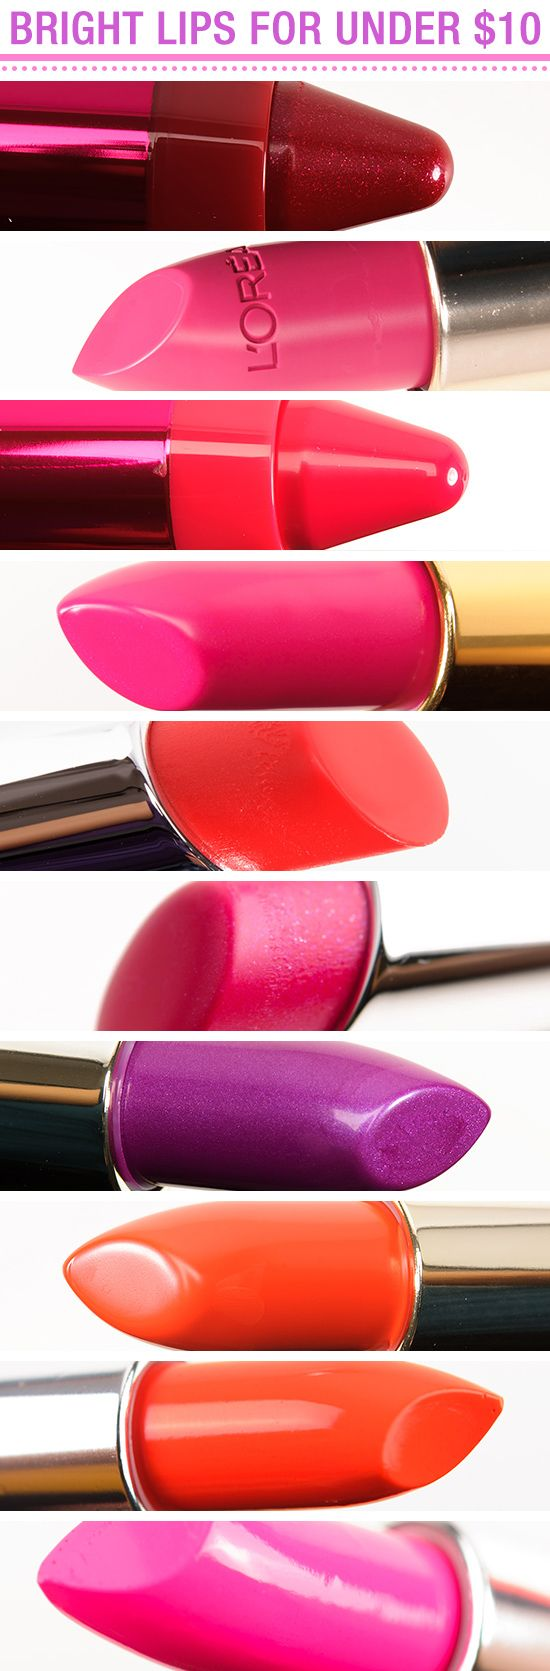 10 of the Best Bright Lipsticks for Under $10